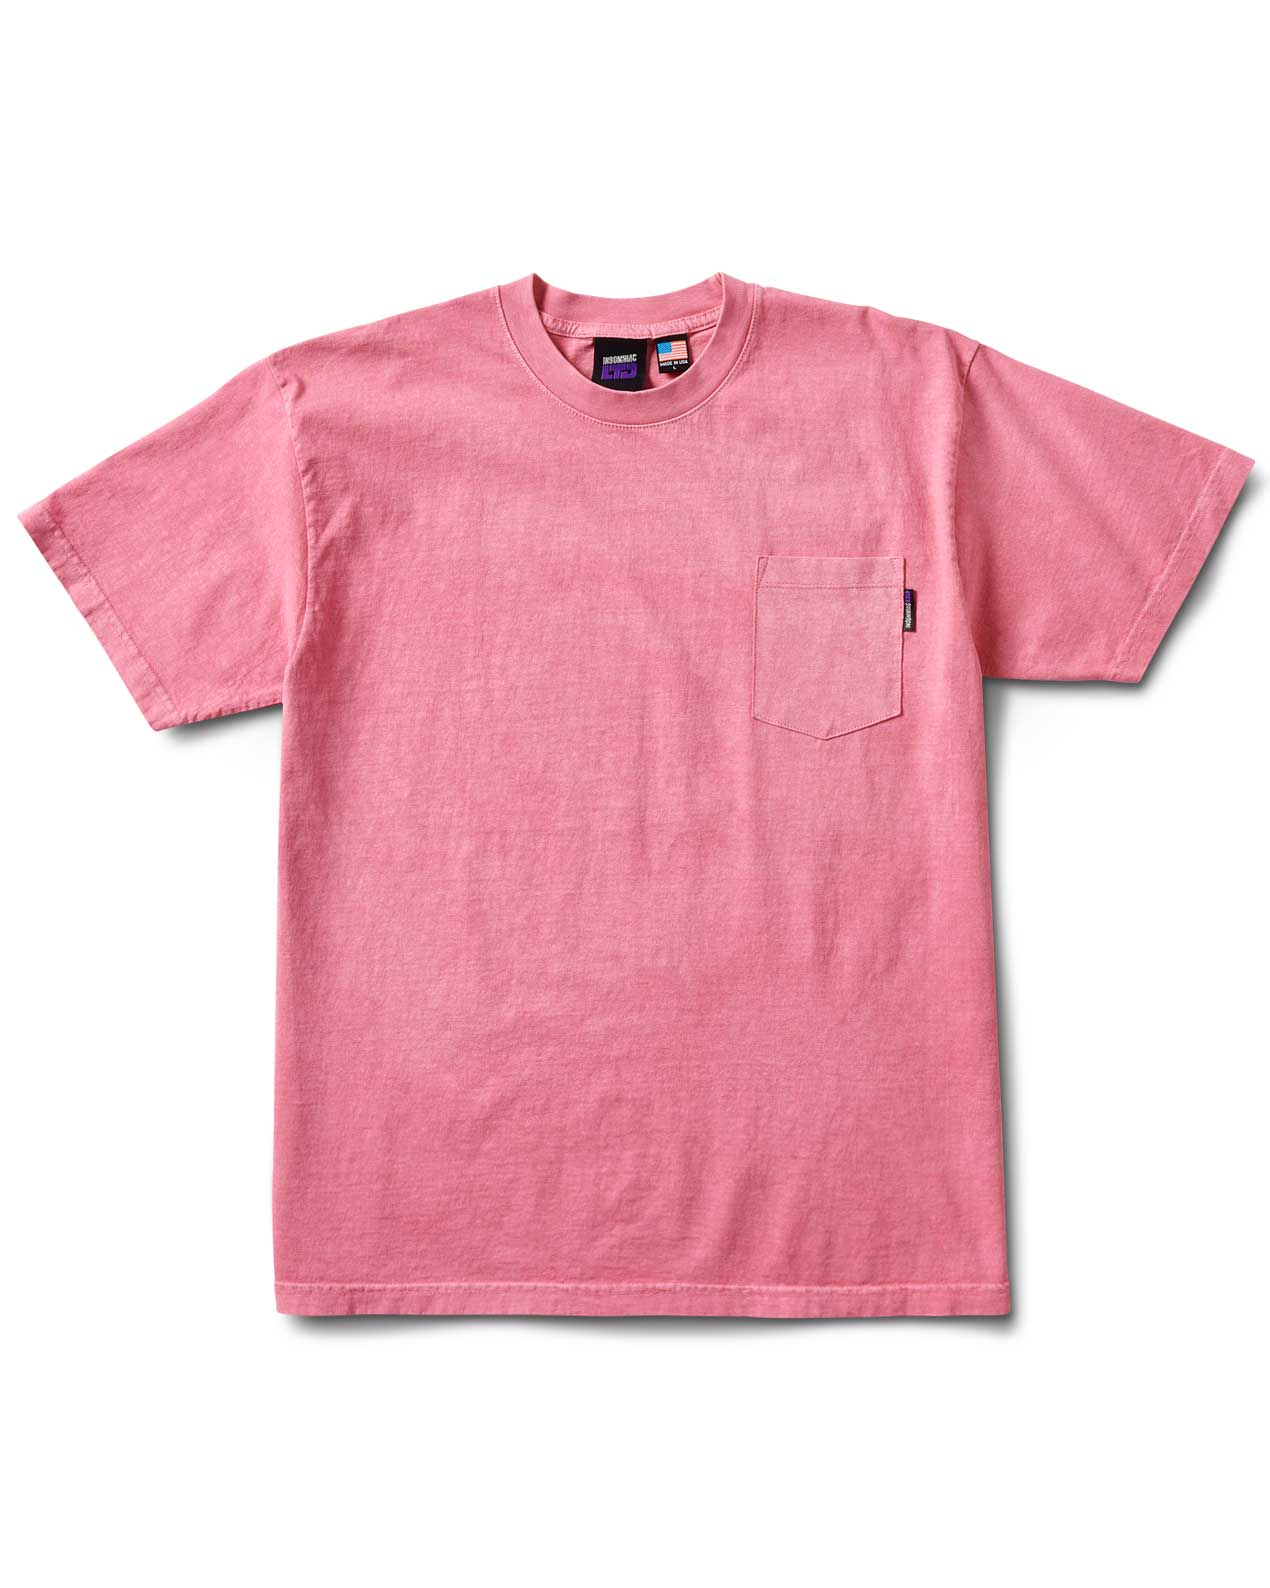 Rb S/S Pocket Tee Peach